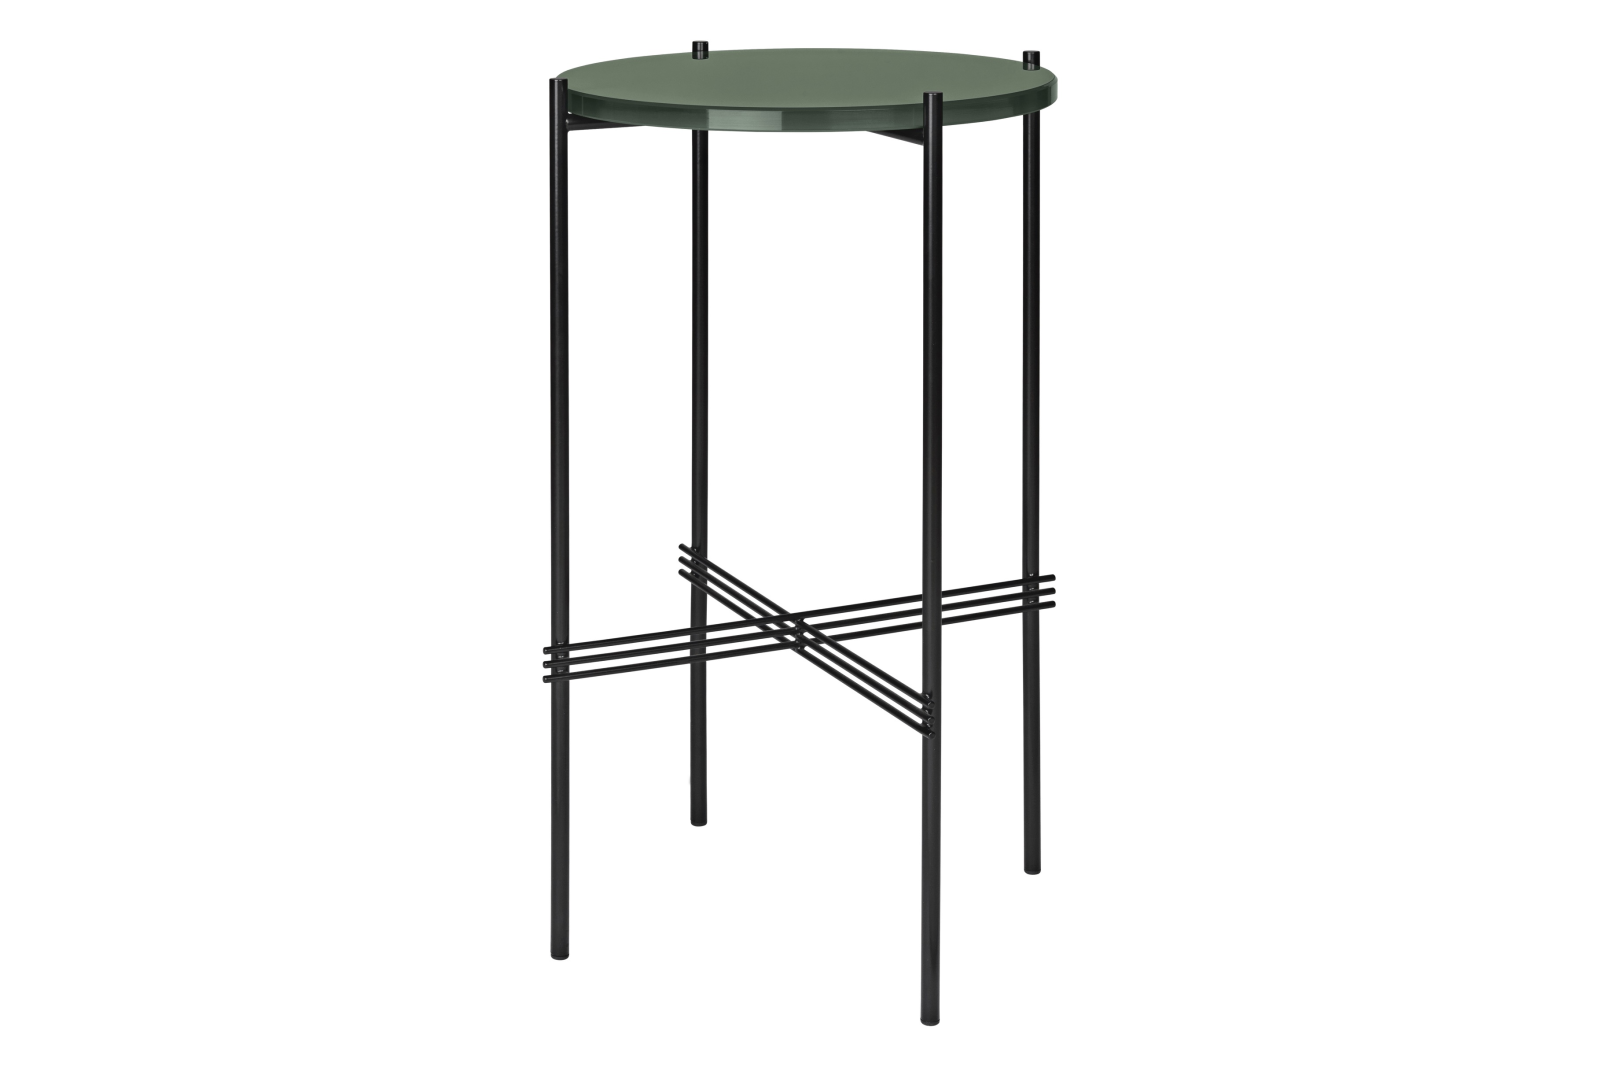 TS Round Console Table with Glass Top Gubi Glass Dusty Green, Gubi Metal Black